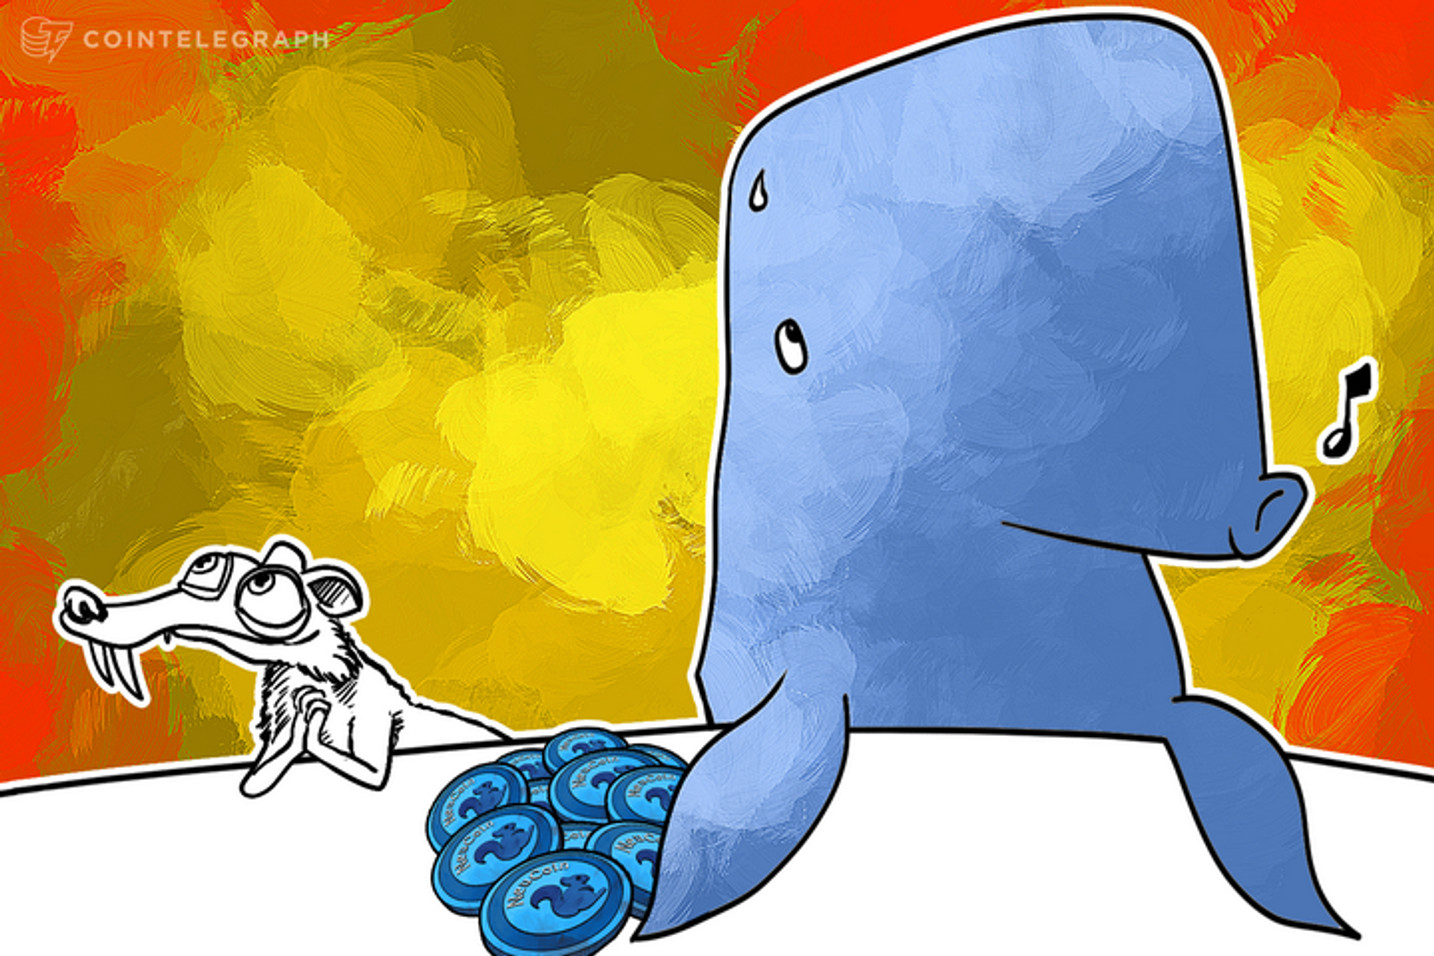 NeuCoin Implements 'Anti-Whale' Measures in Reaction to Presale Popularity